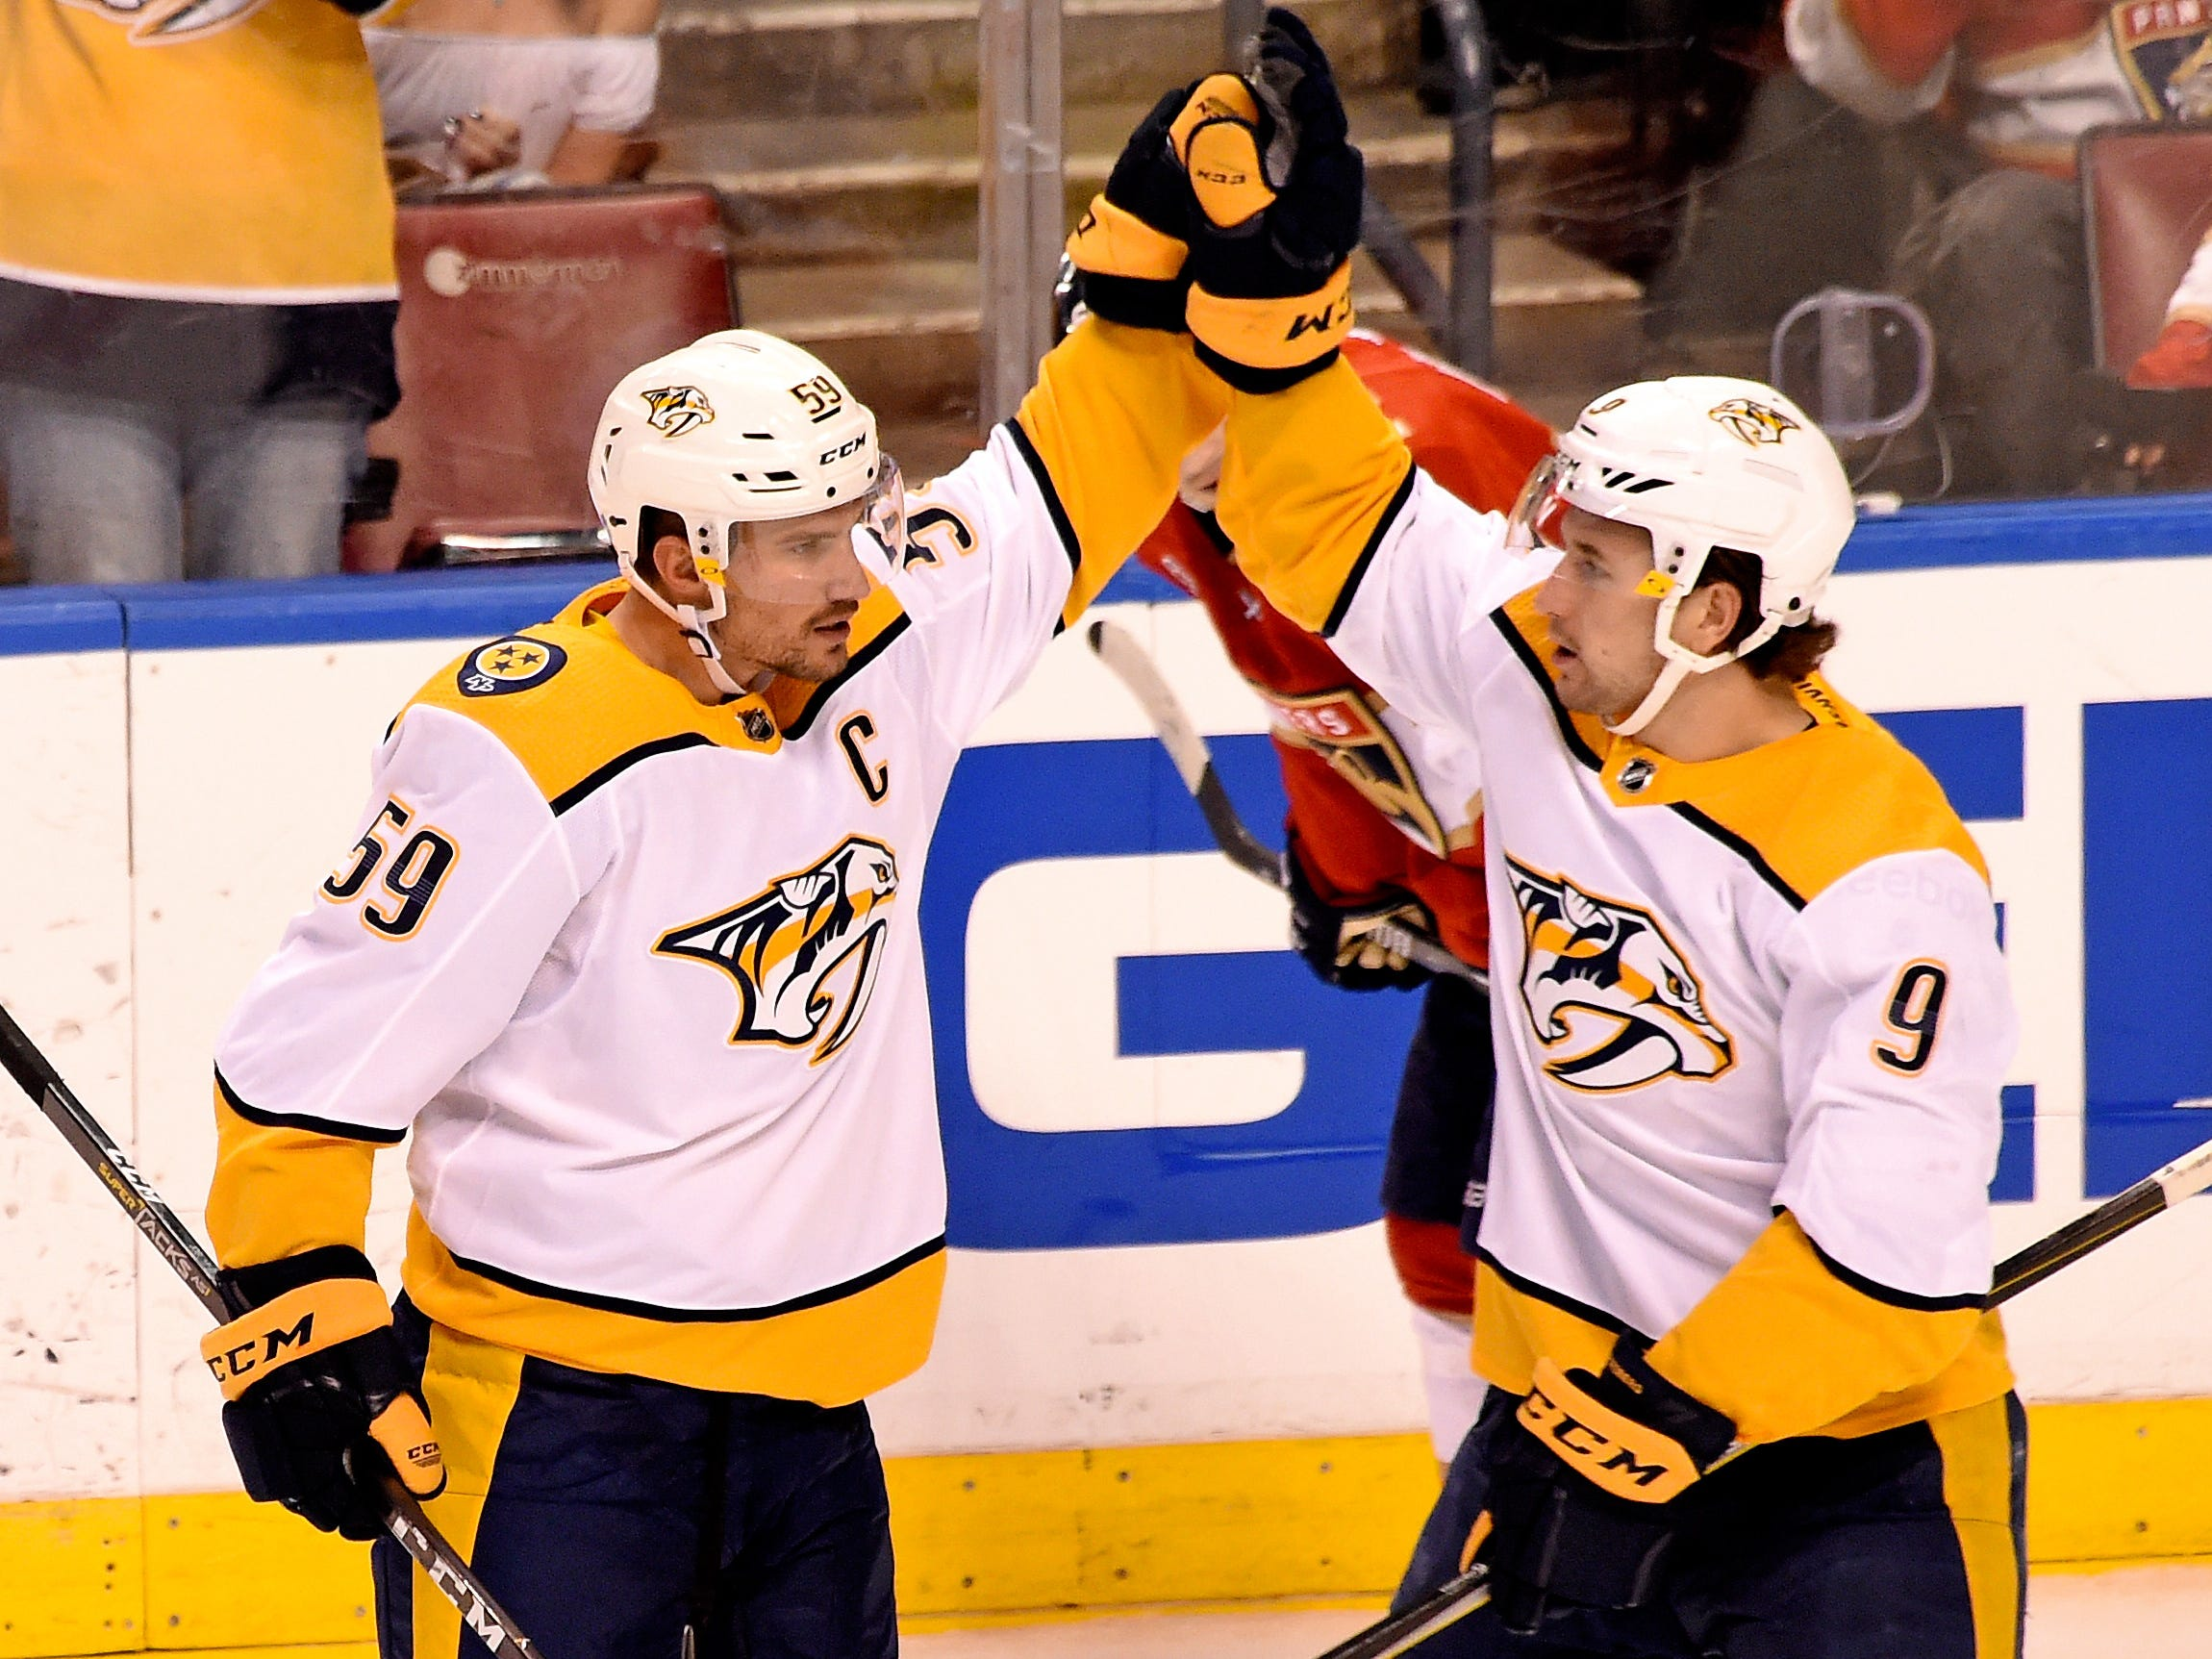 Nashville Predators defenseman Roman Josi (left) celebrates after scoring a goal with teammate Nashville Predators left wing Filip Forsberg (right) during the third period against the Florida Panthers at BB&T Center.